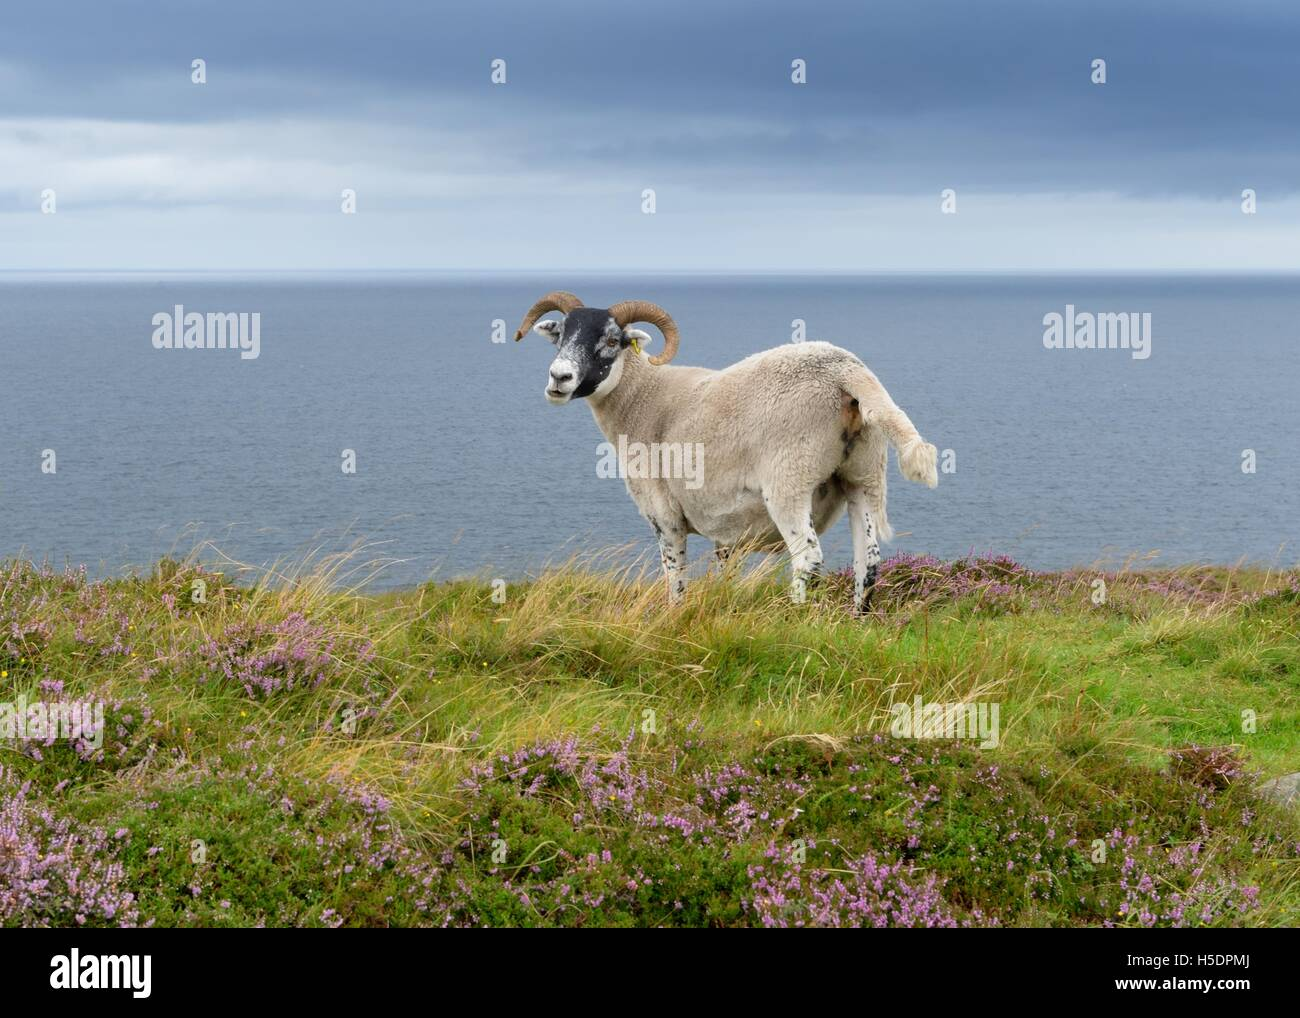 The Scottish Blackface sheep standing on hill with the sea behind it in Highland, Scotland, UK - Stock Image